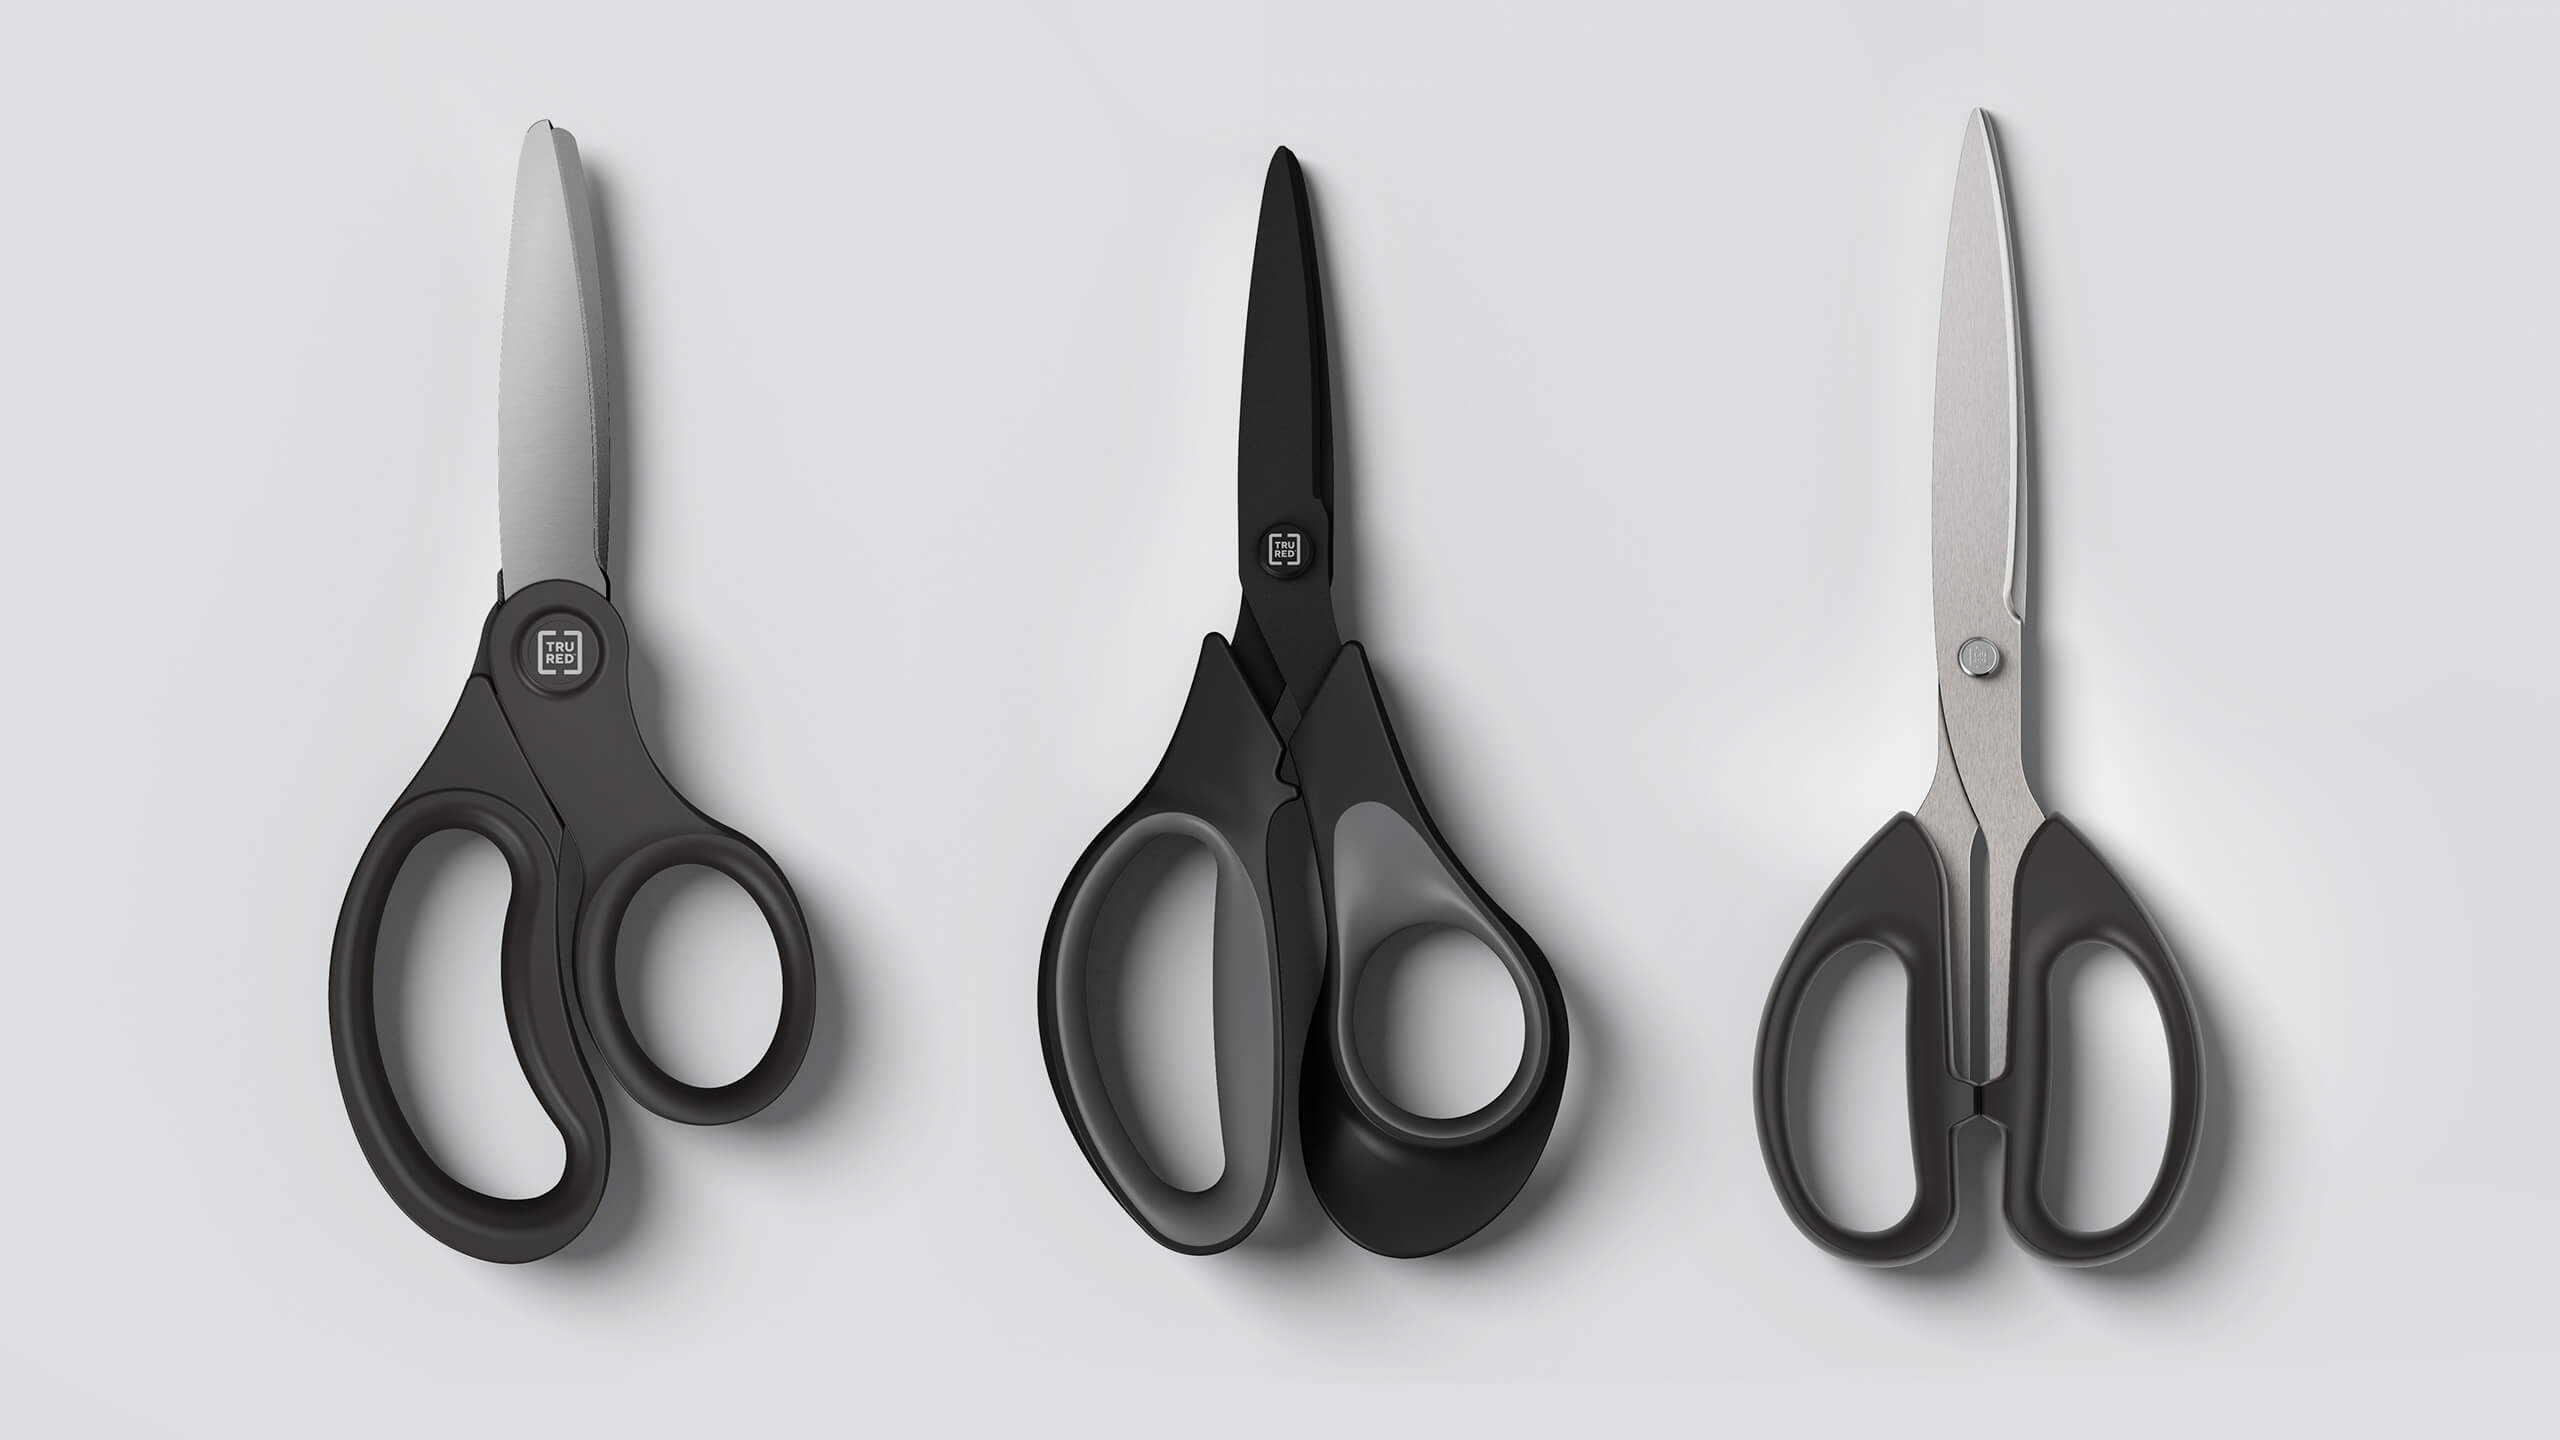 Staples Sprout Studios Swiss Army knife of Design Product industrial ID Packaging Strategy Branding Rendering CGI Sprout studios, Boston, industrial design, product design, rendering, CAD,